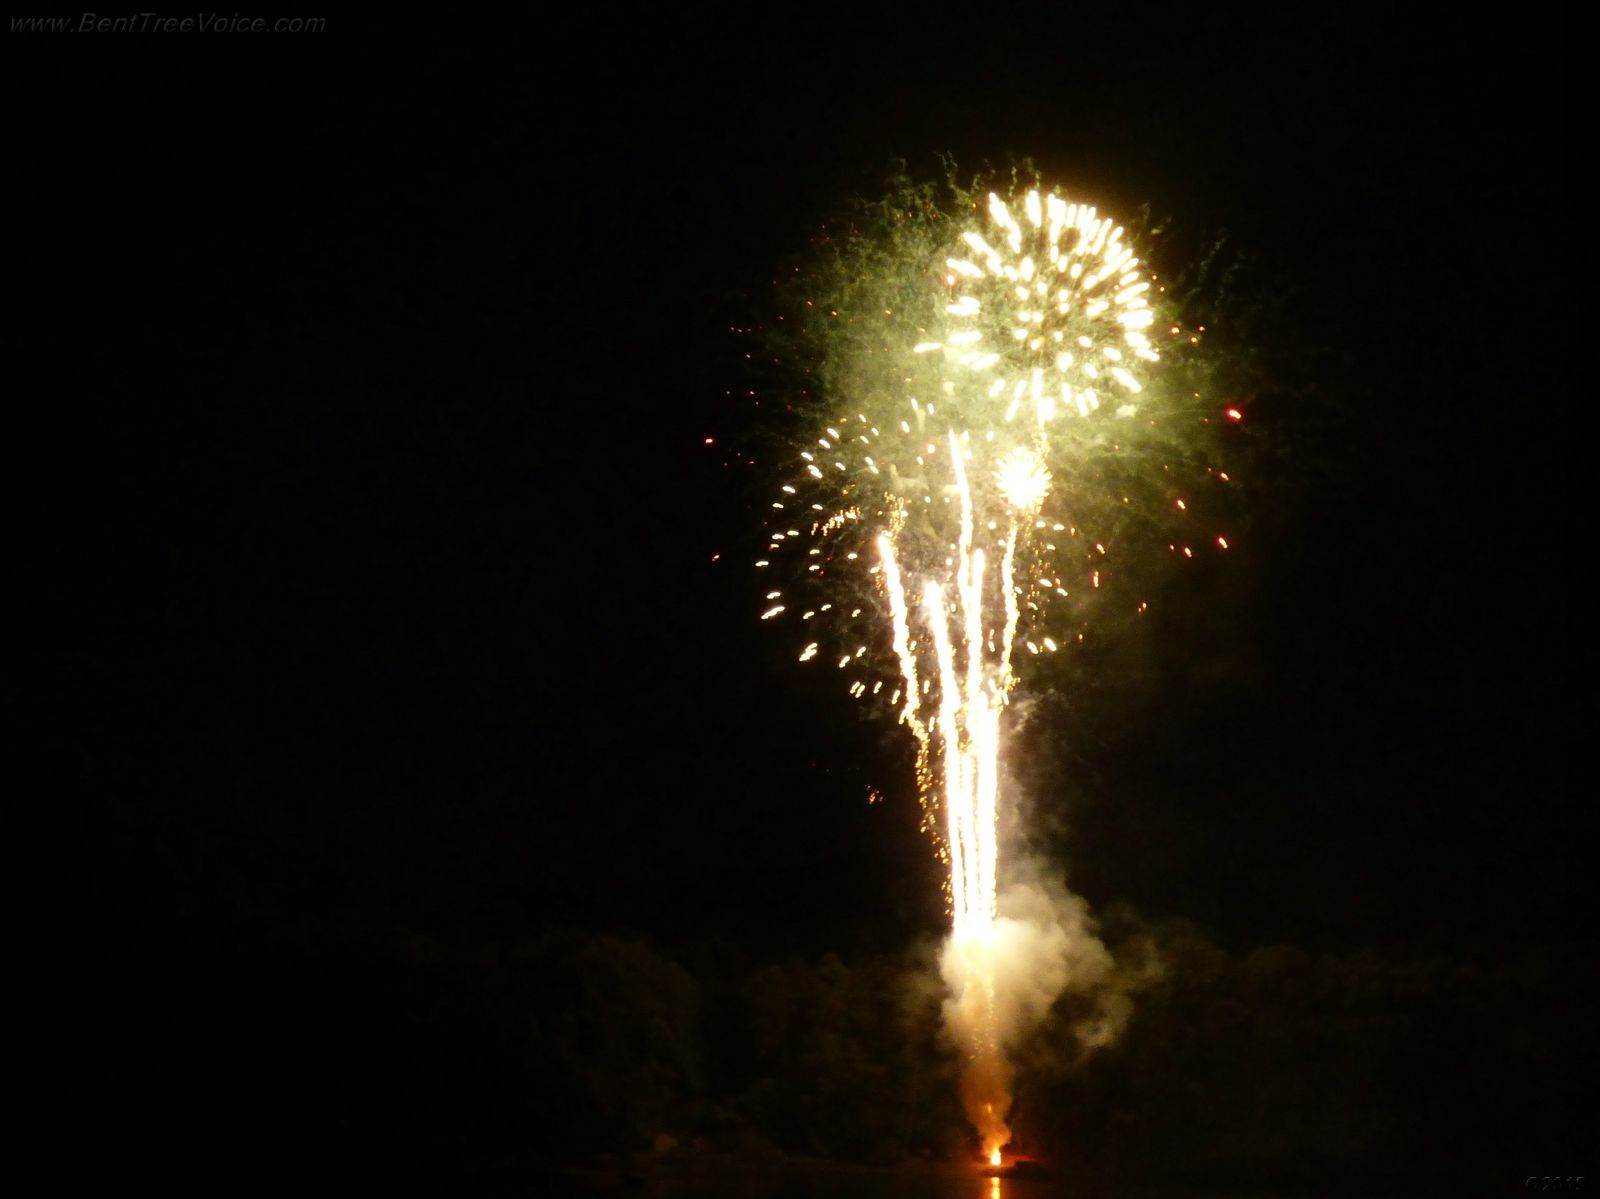 July 4, 2014 - fireworks over Lake Tamarack in Bent Tree